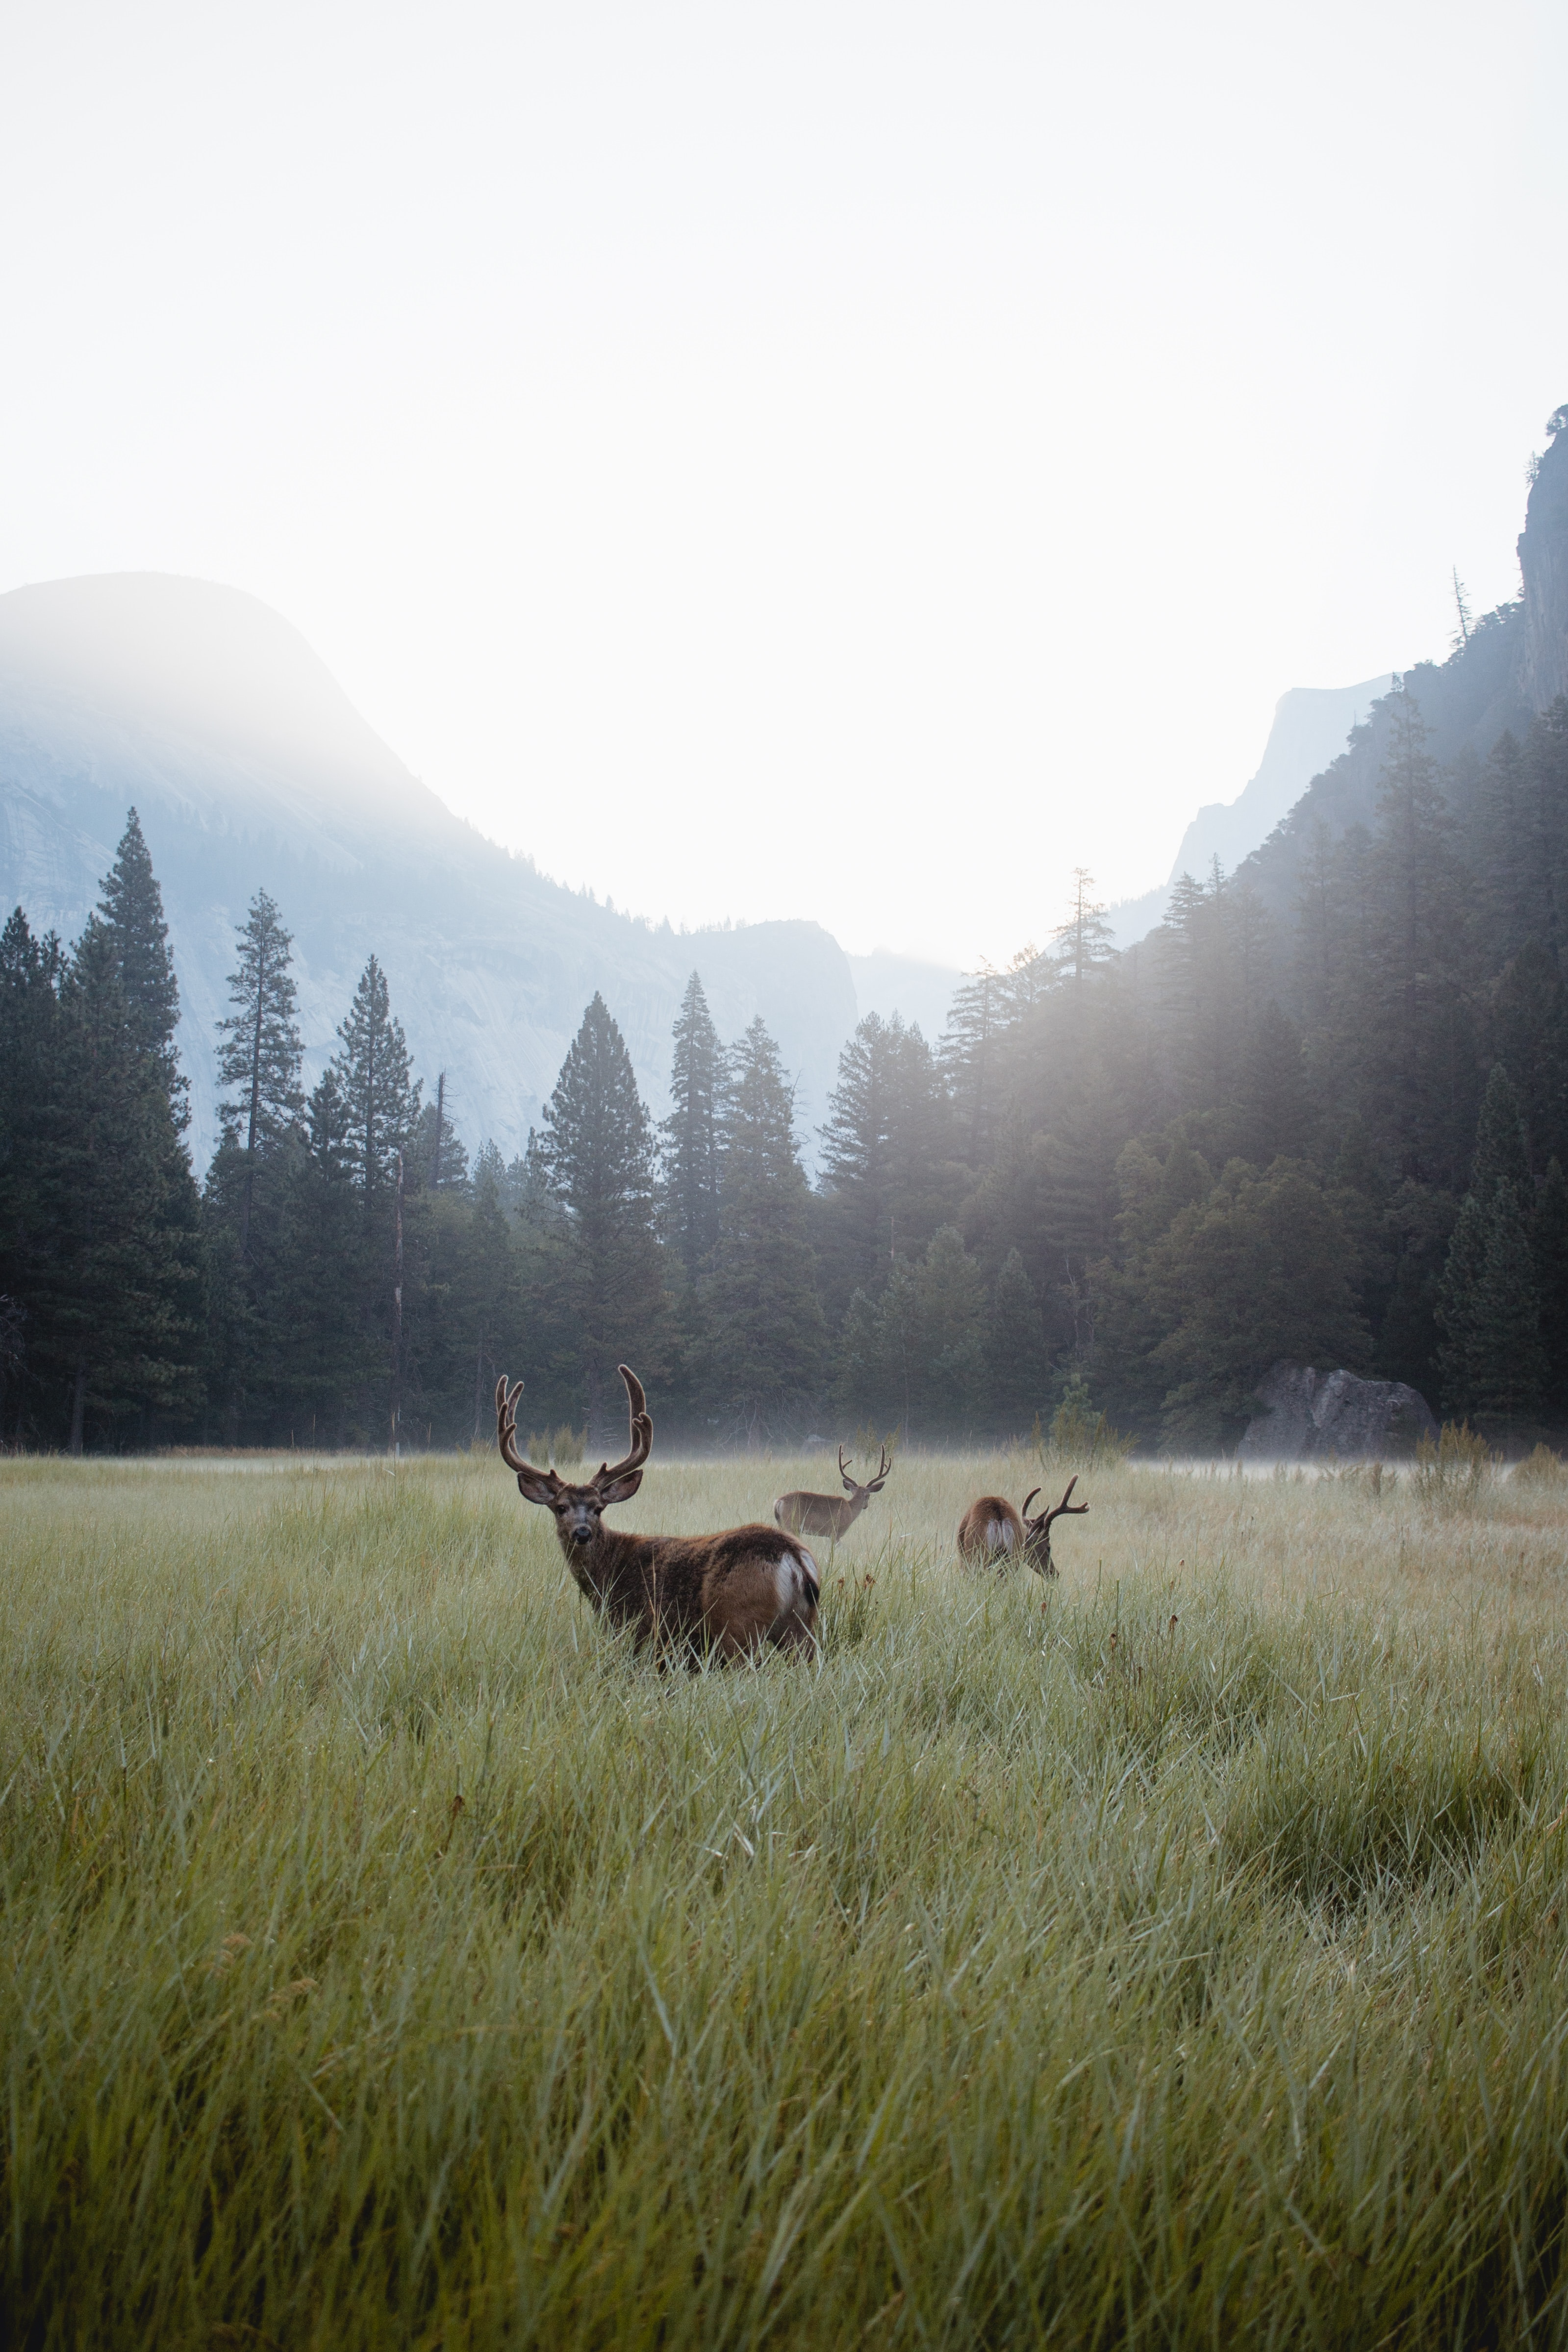 98627 download wallpaper Animals, Deers, Lawn, Forest, Fog, Wildlife, Mountains screensavers and pictures for free